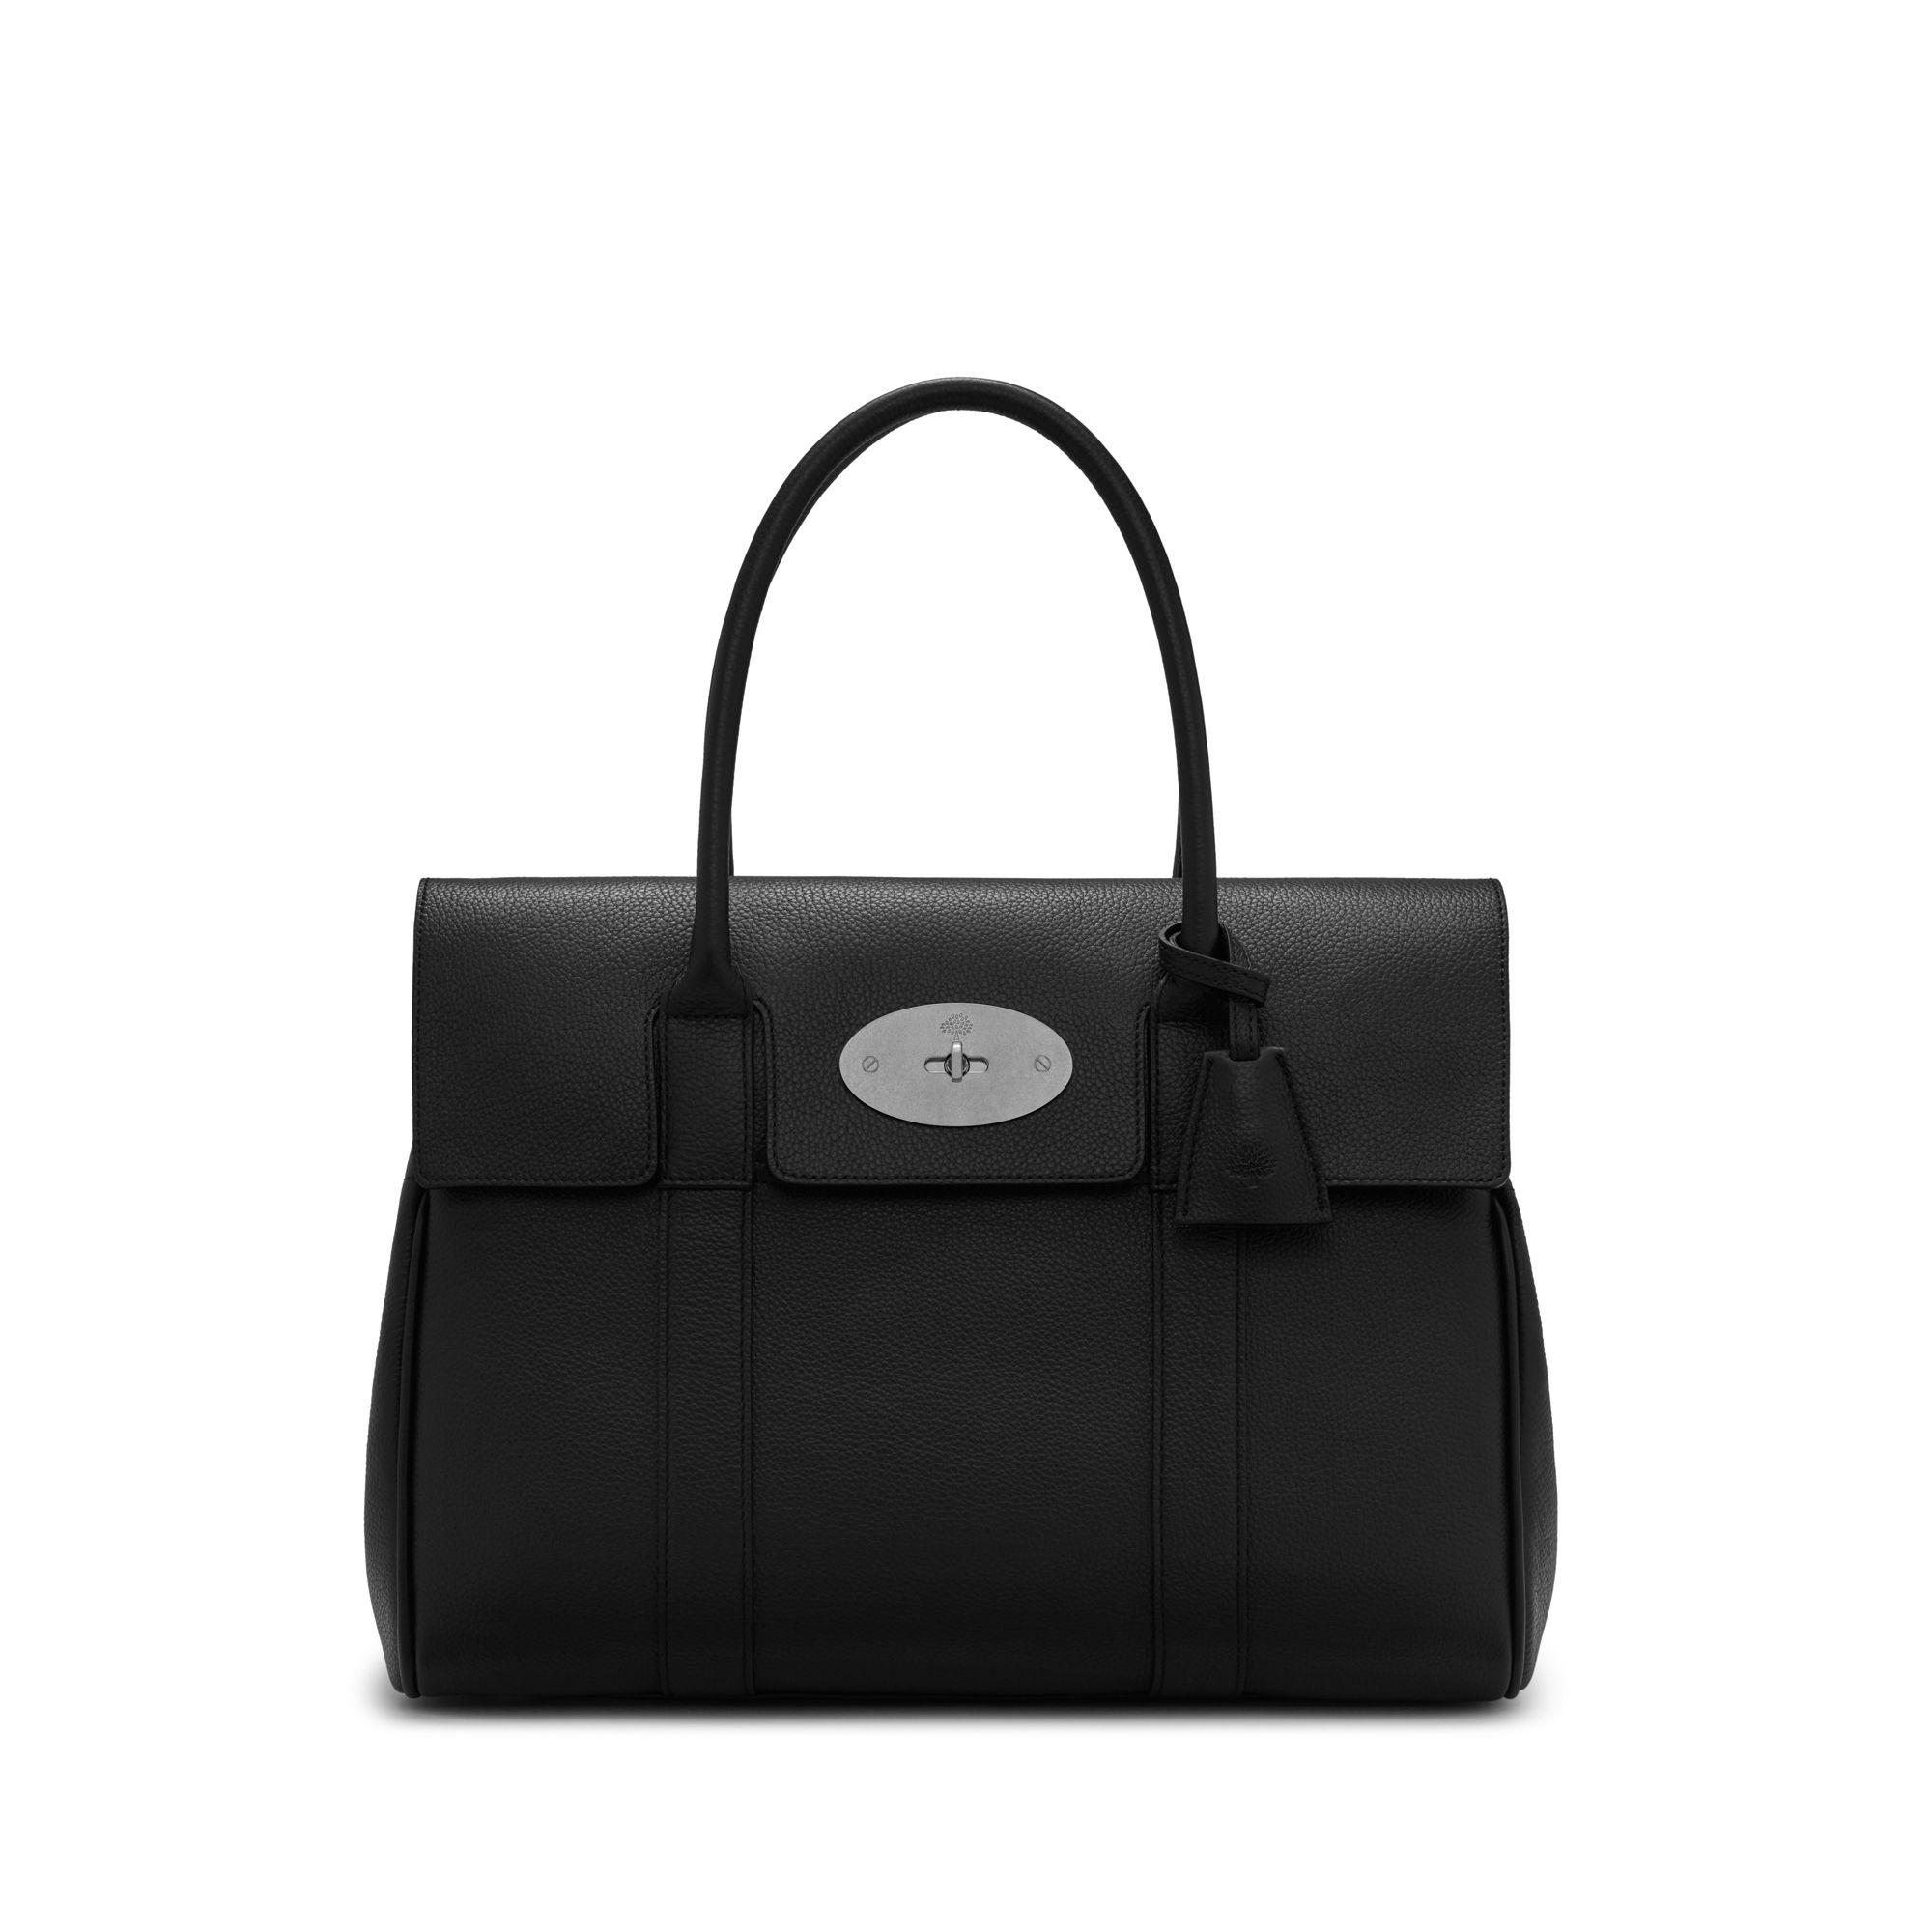 Lyst - Mulberry Heritage Bayswater In Black Small Classic Grain With ... 2053fdcb6c03f